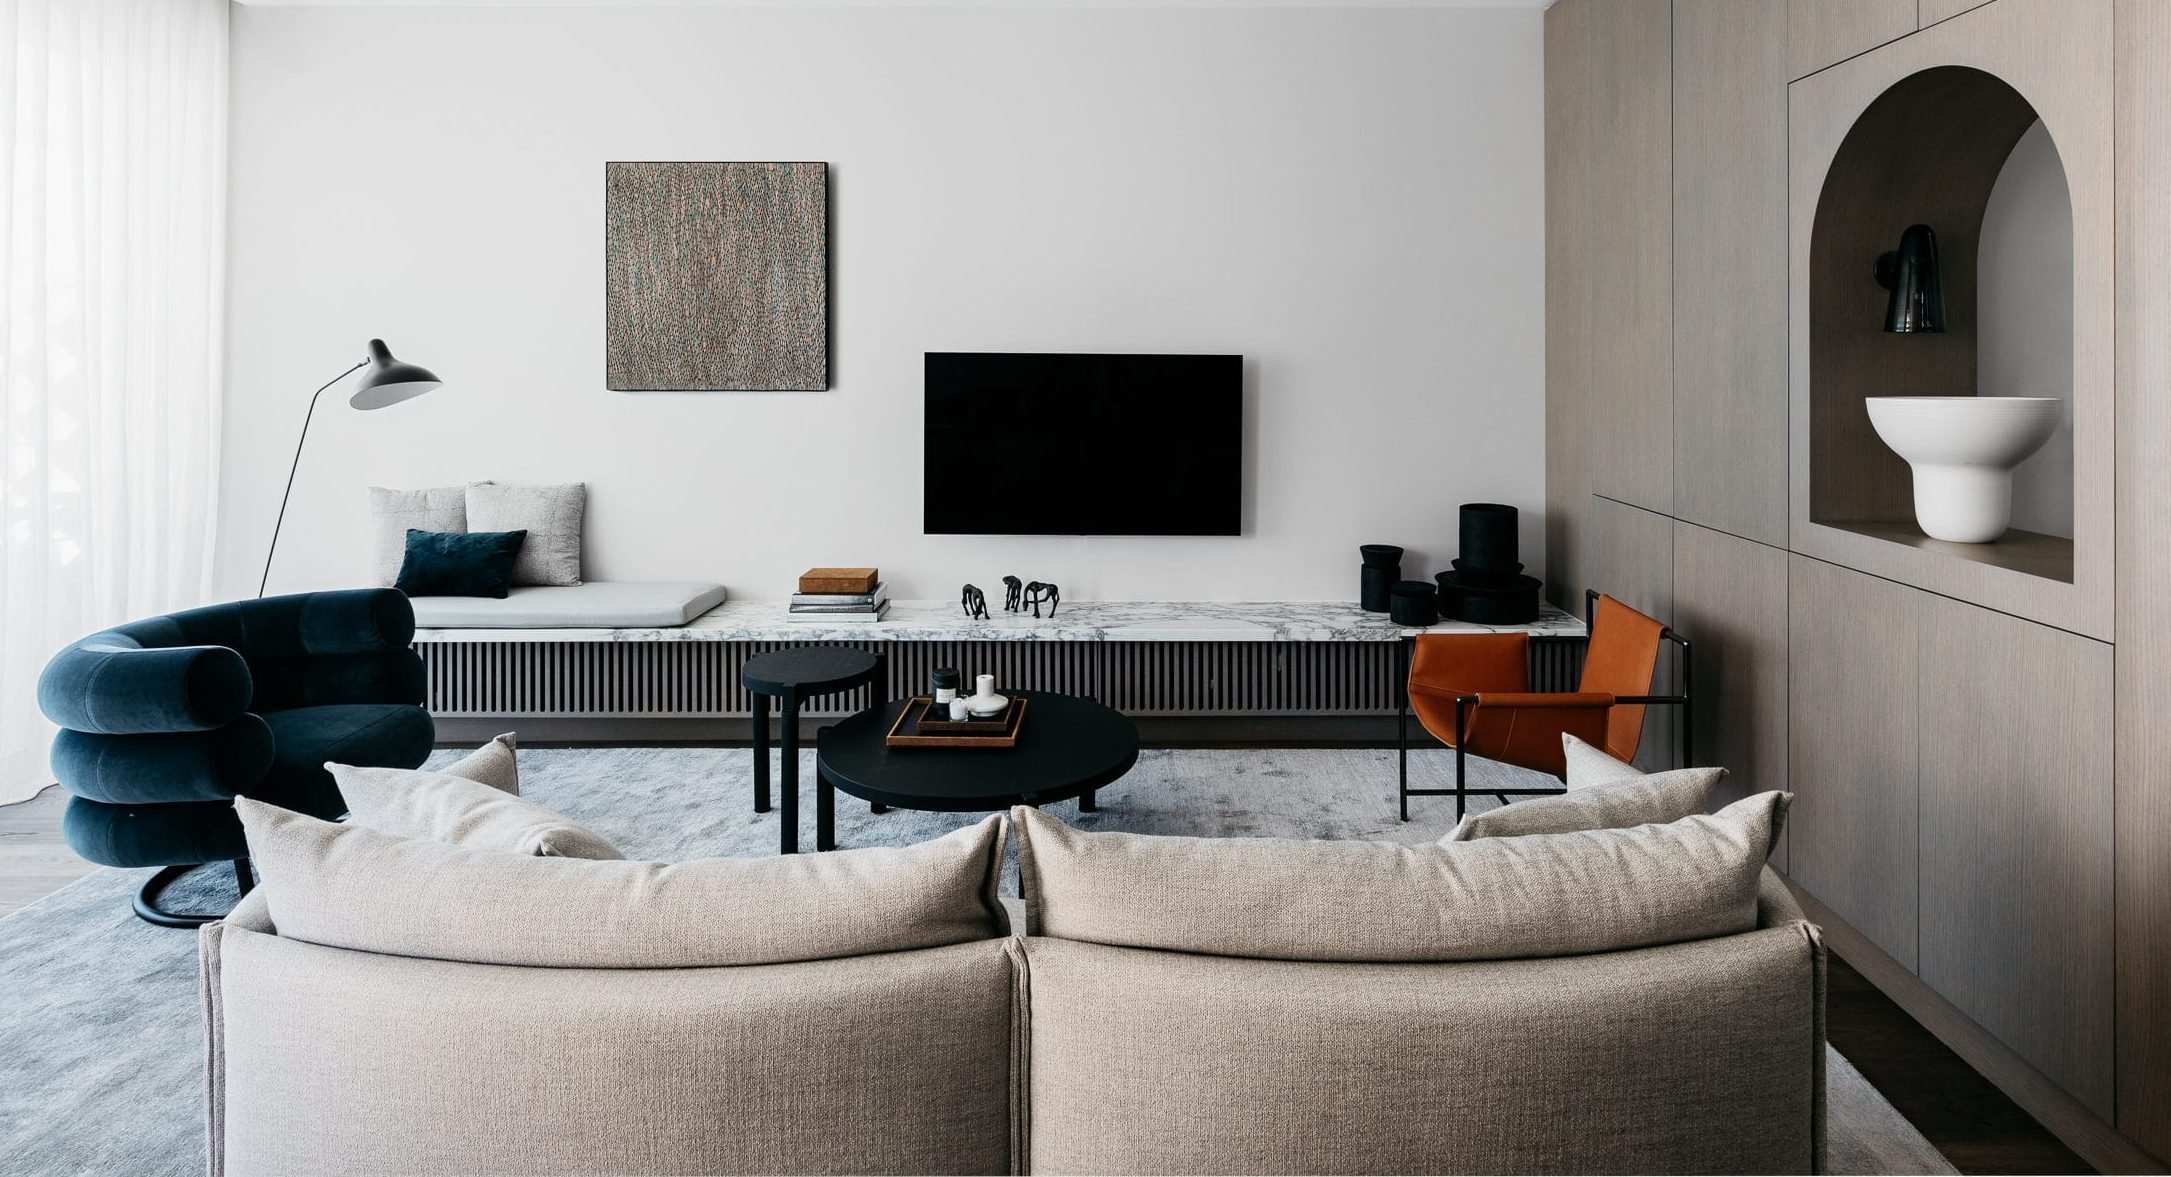 Bobby On A Budget Sculptural Modern Living Rooms And How To Get The Look For 2 500 Bobby Berk